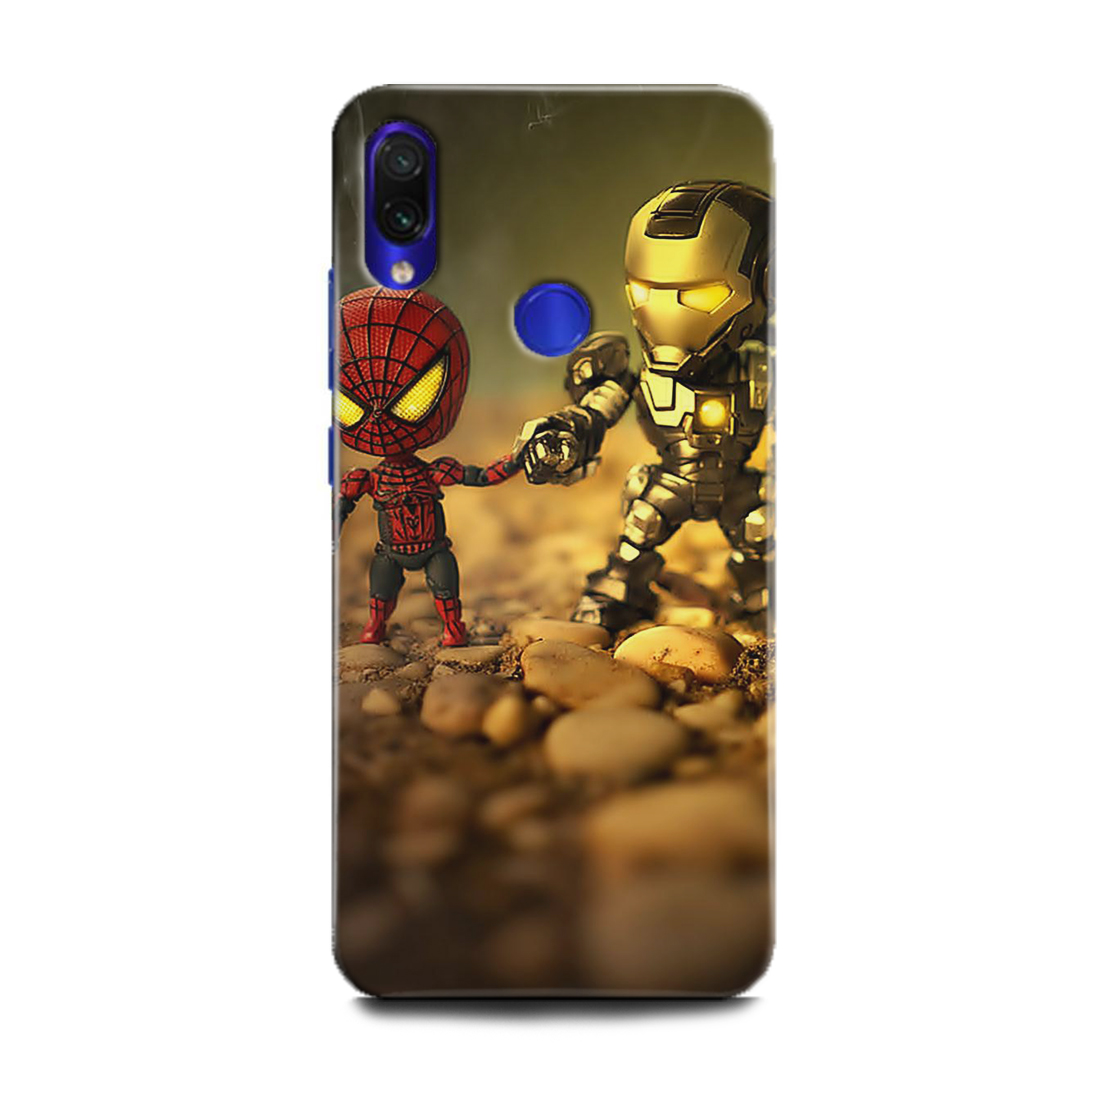 INDICRAFT Mobile Back Cover For Mi Redmi Y3 / Hard Case (Iron Man, Spiderman, Comic, Avengers, Marvel, Superheroes, M1810F6I) (AB-RedmiY3-0062)